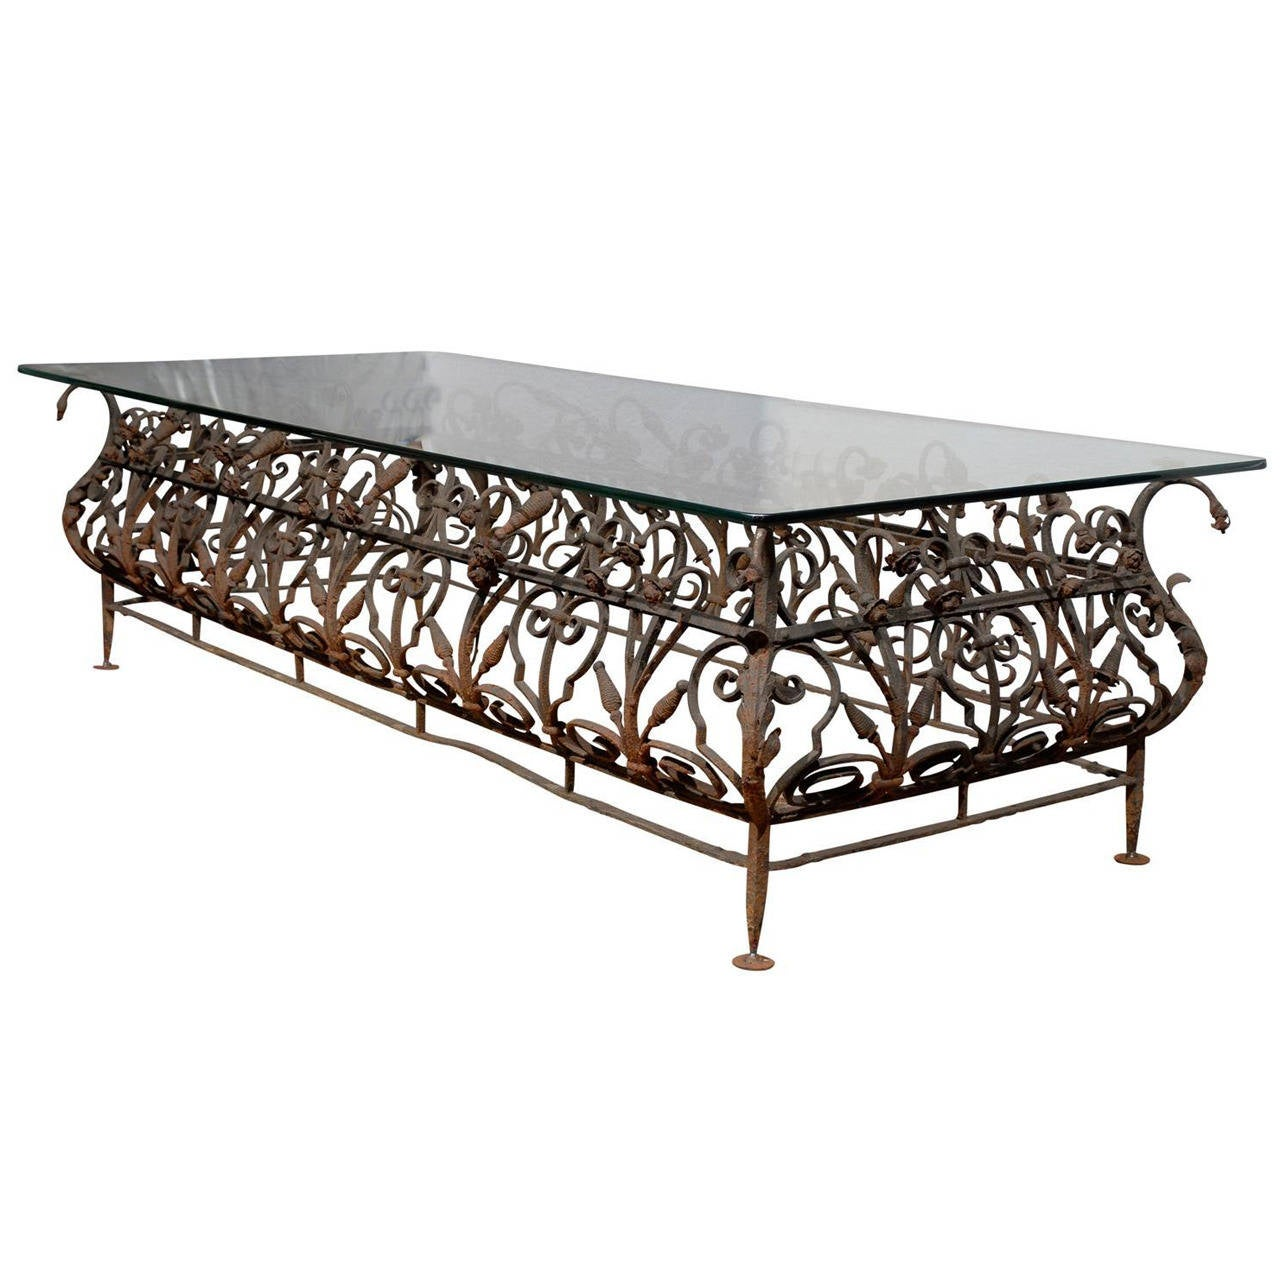 Austrian mid 19th century large size wrought iron and glass top coffee table for sale at 1stdibs Coffee tables glass top